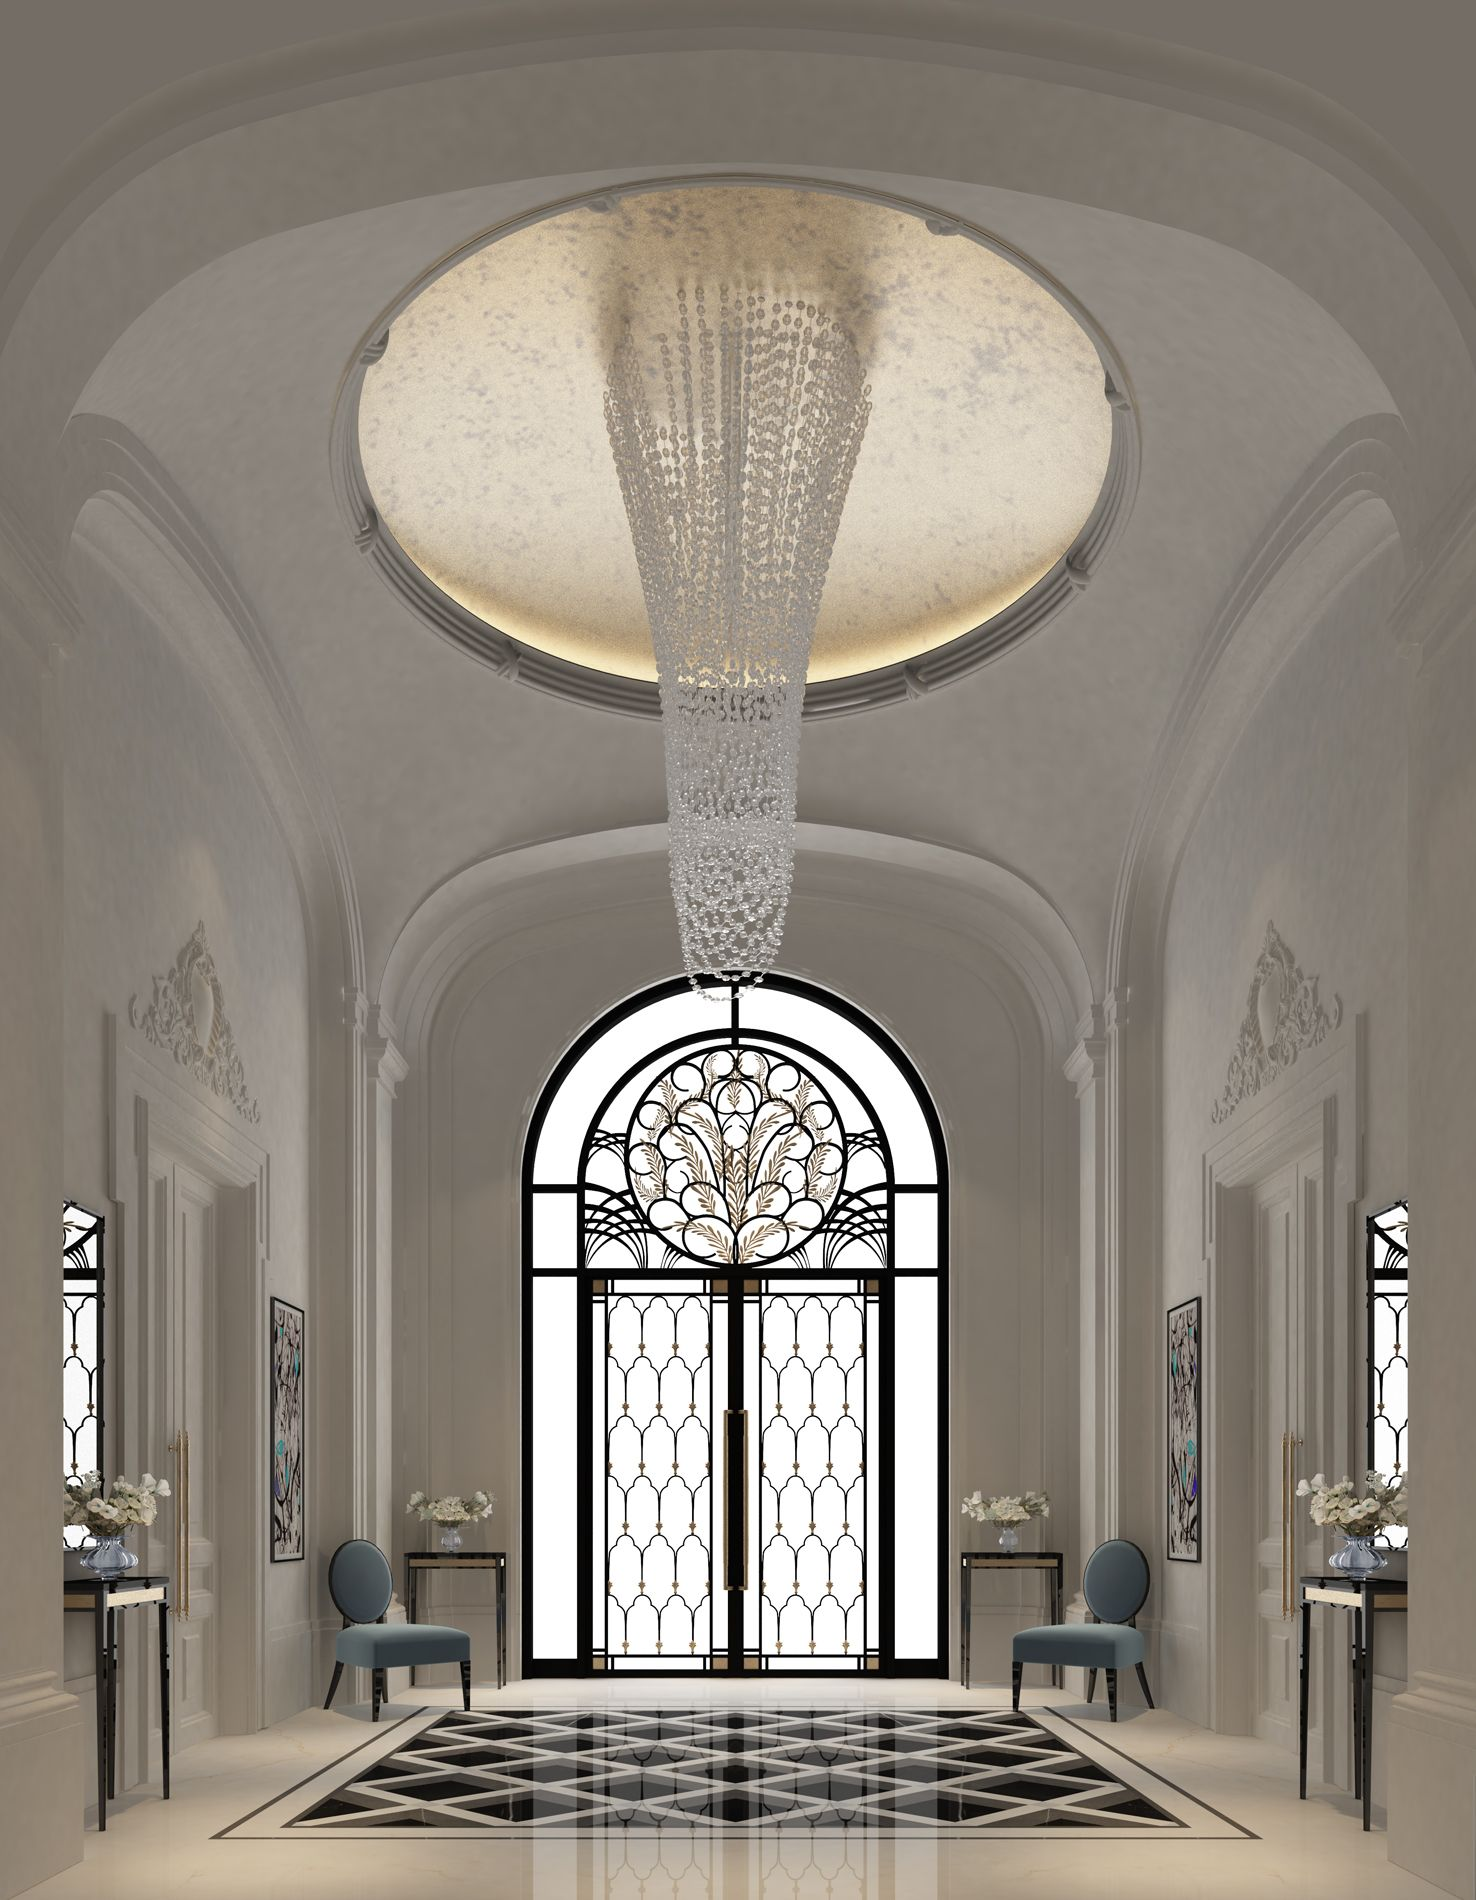 Luxury Home Entrance Luxury Interior Design For An Entrance Lobby By Ions